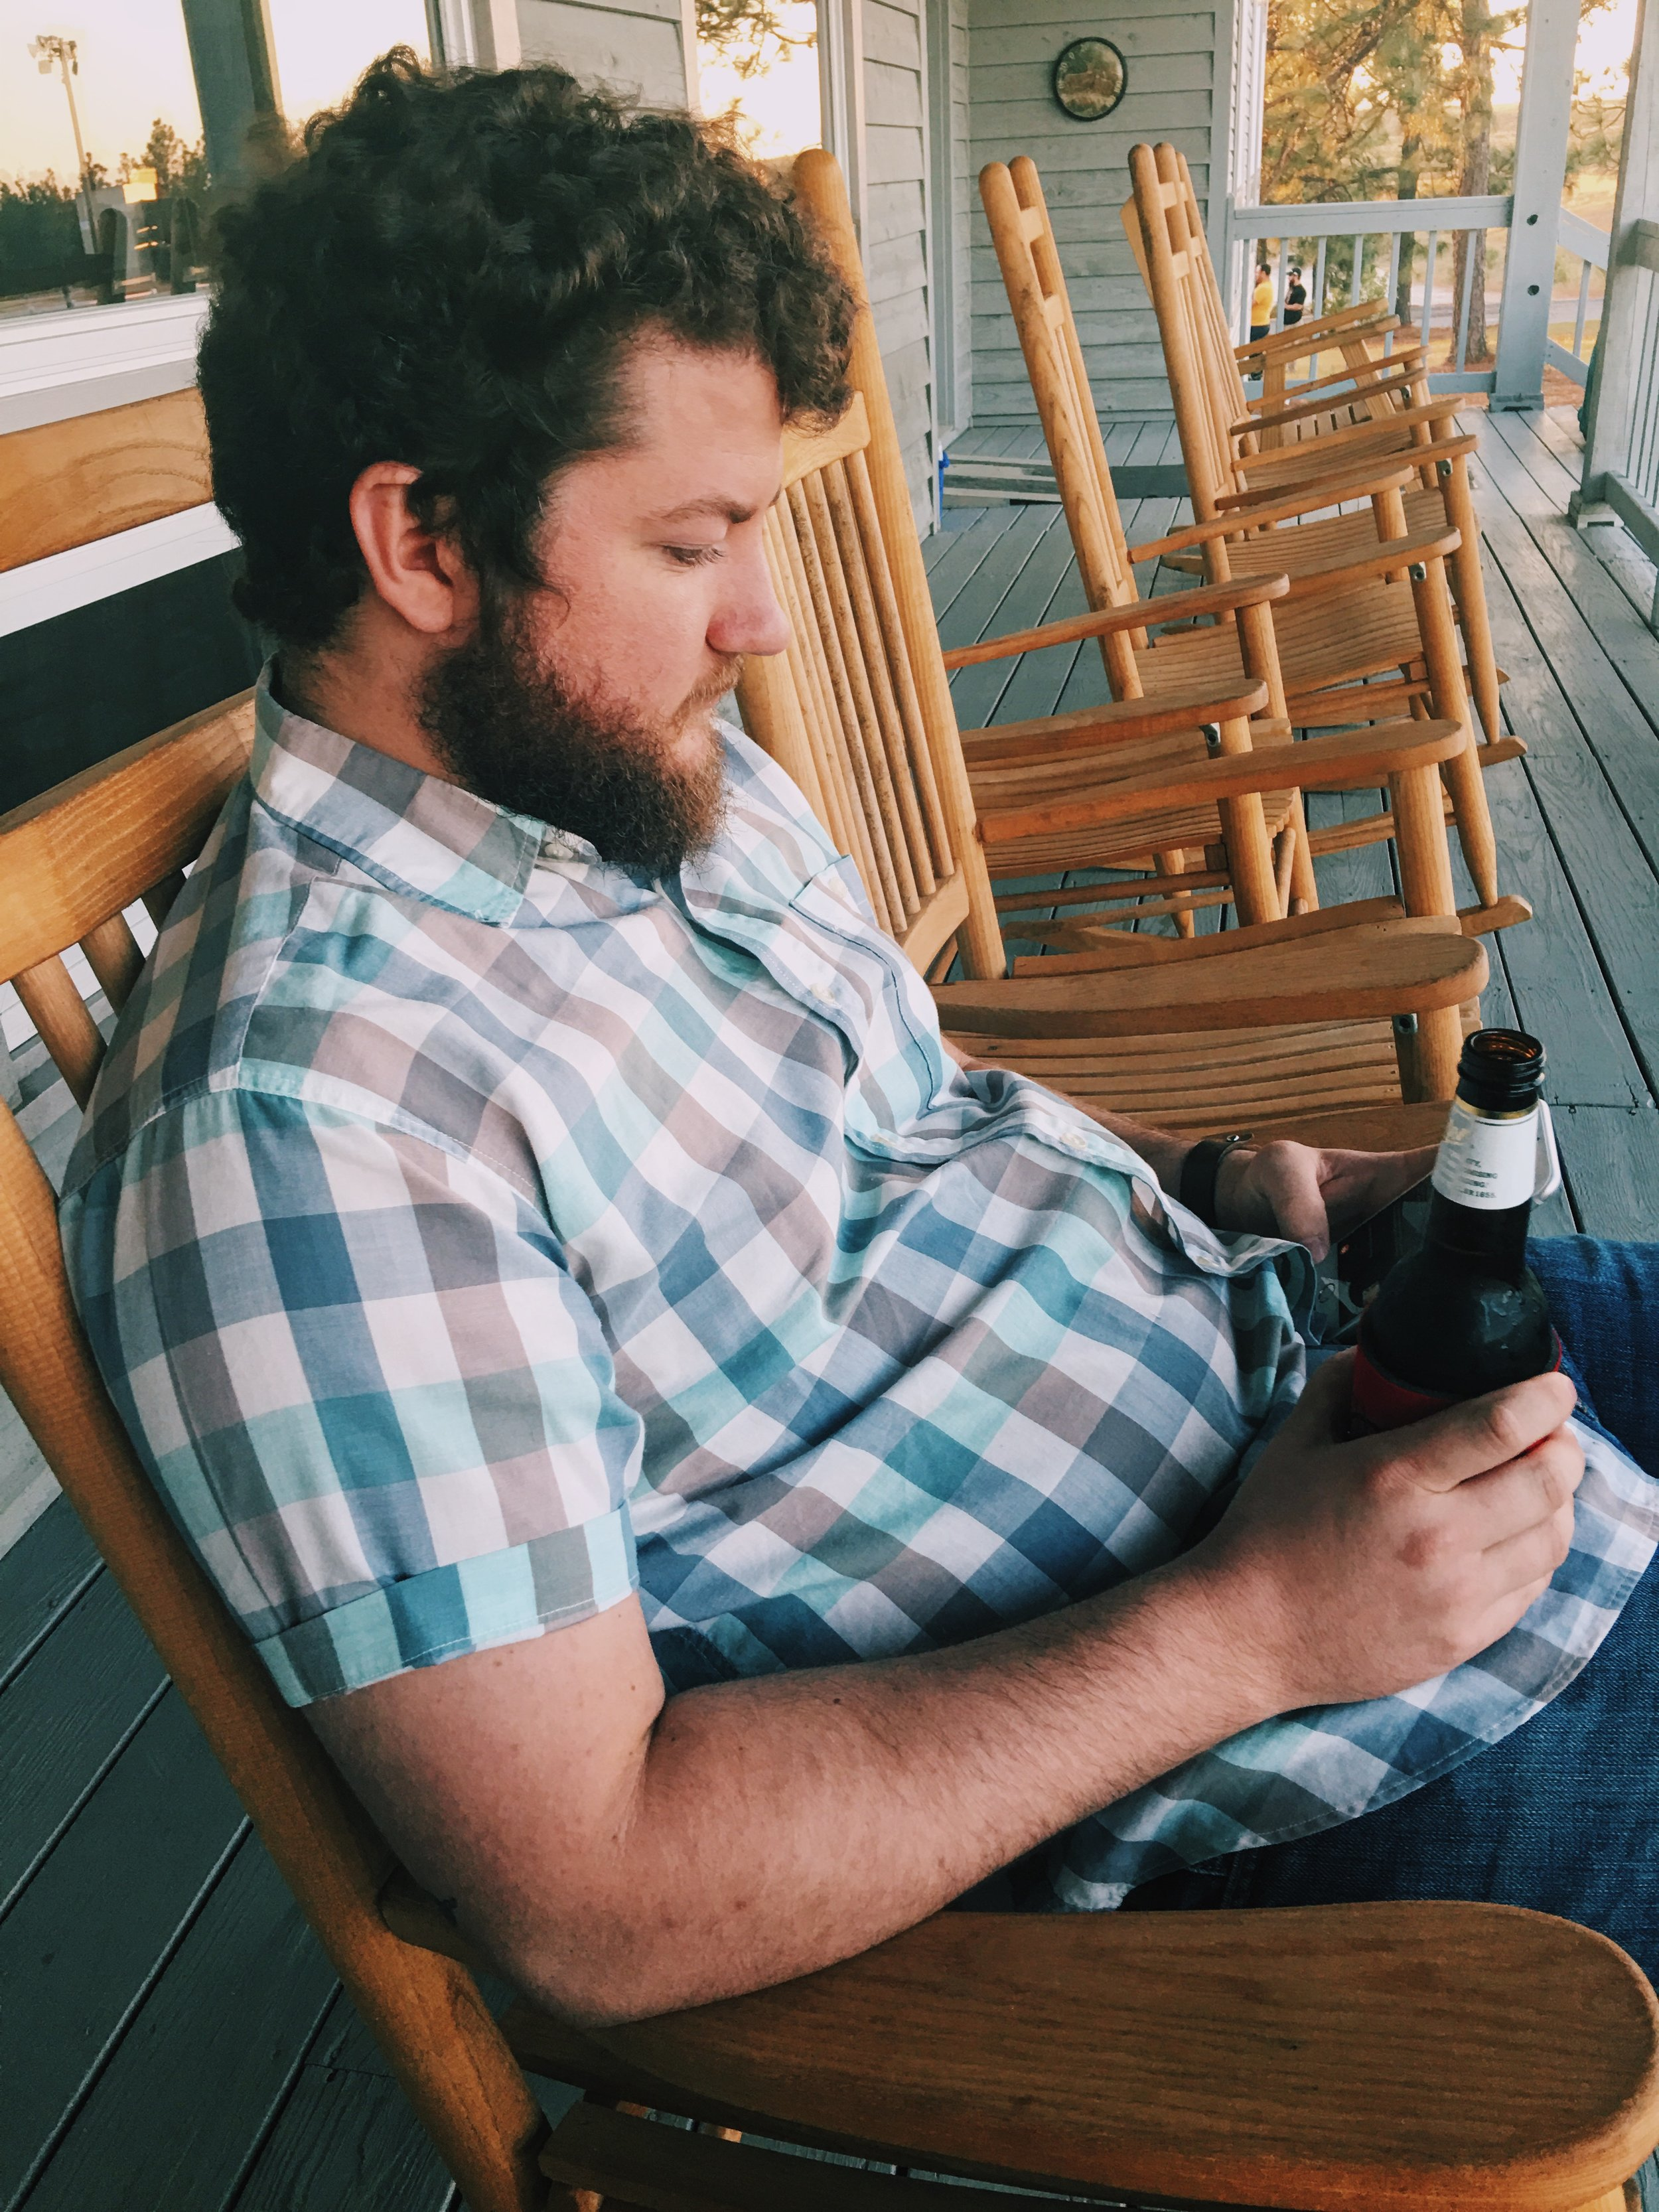 Cheap beer and porch sittin' at Pinetucky.